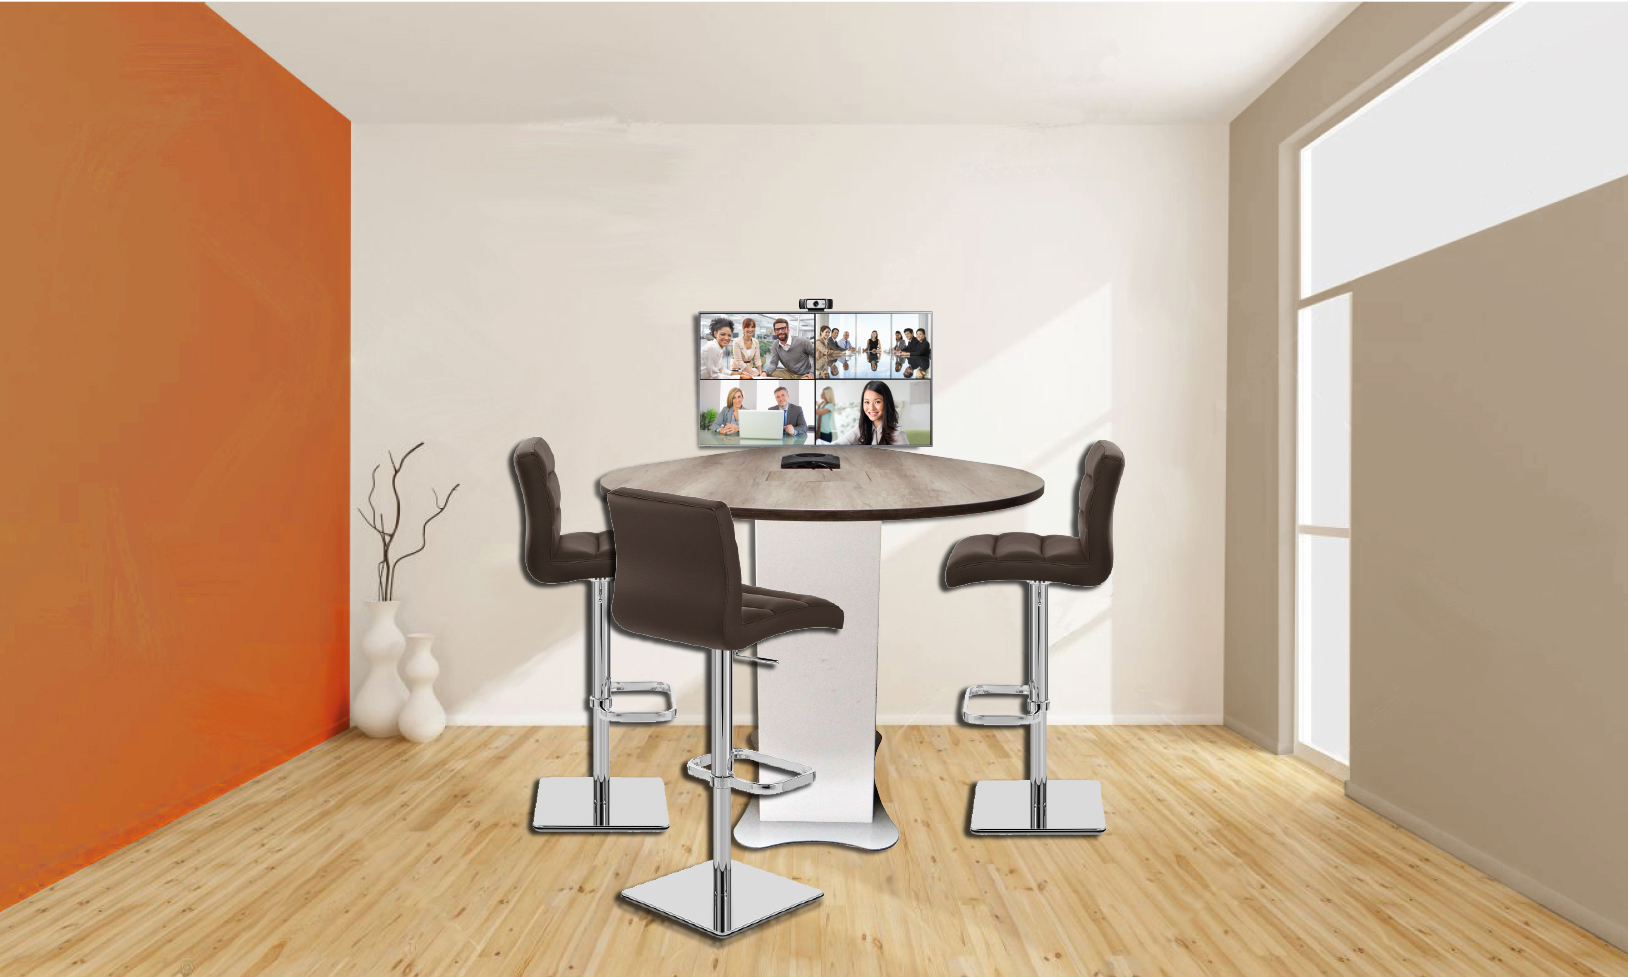 TABLE DE REUNION L 1900 x l 1300 x H 750 mm plateau mélaminé HR 25mm + support moniteur + Webcam + Hub USB + Chat 150 + Ecran 43´´ + câbles